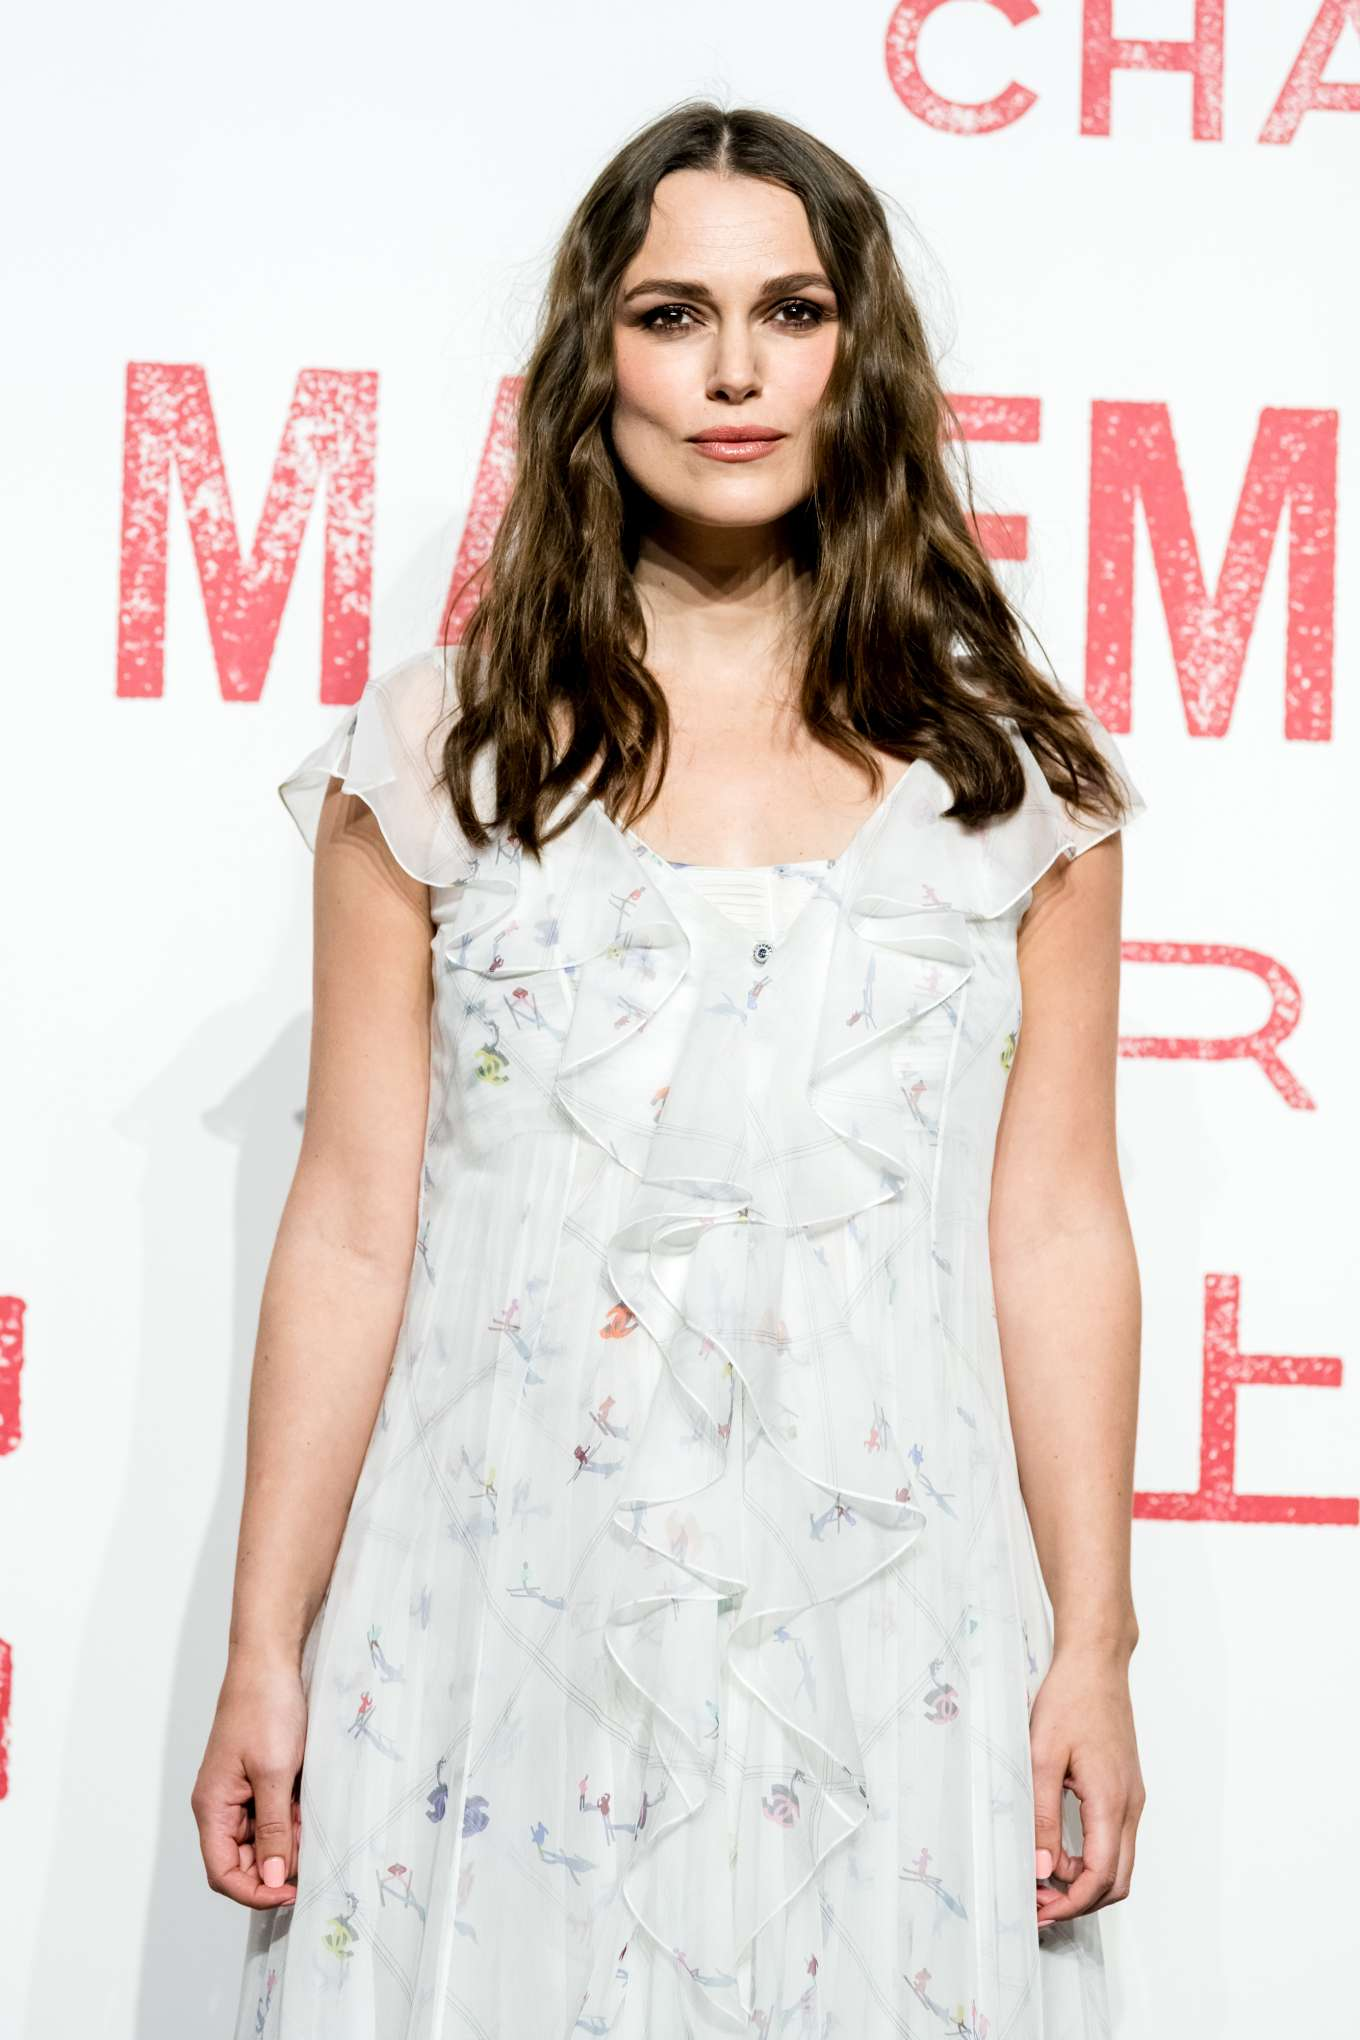 Keira Knightley - Arrives for the Chanel Mademoiselle Prive exhibition in Shanghia